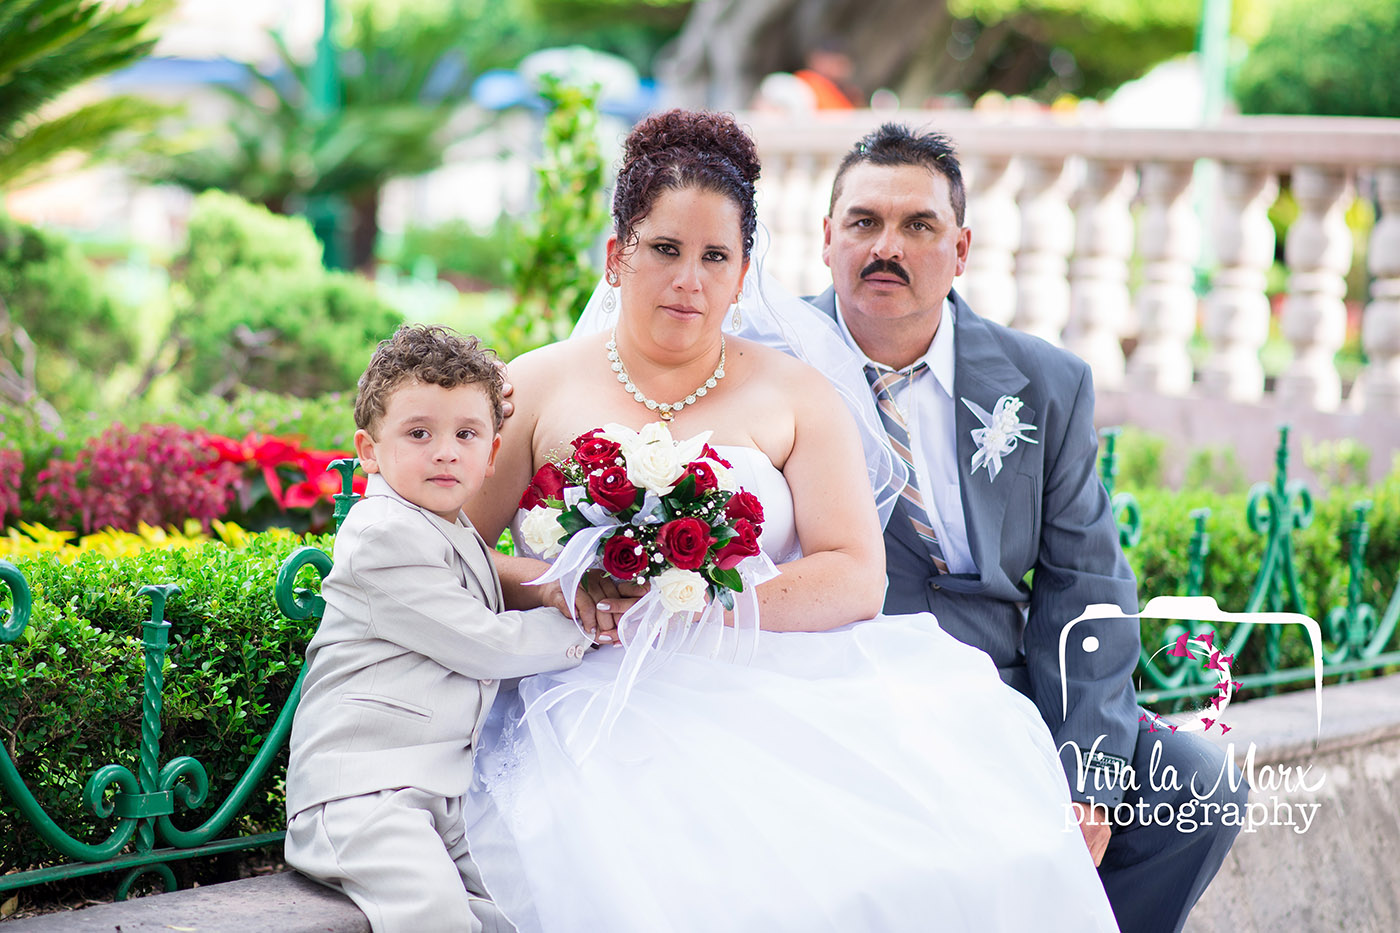 Catalina Jose and their first son, Demetrio. He got to be part of his parents wedding!